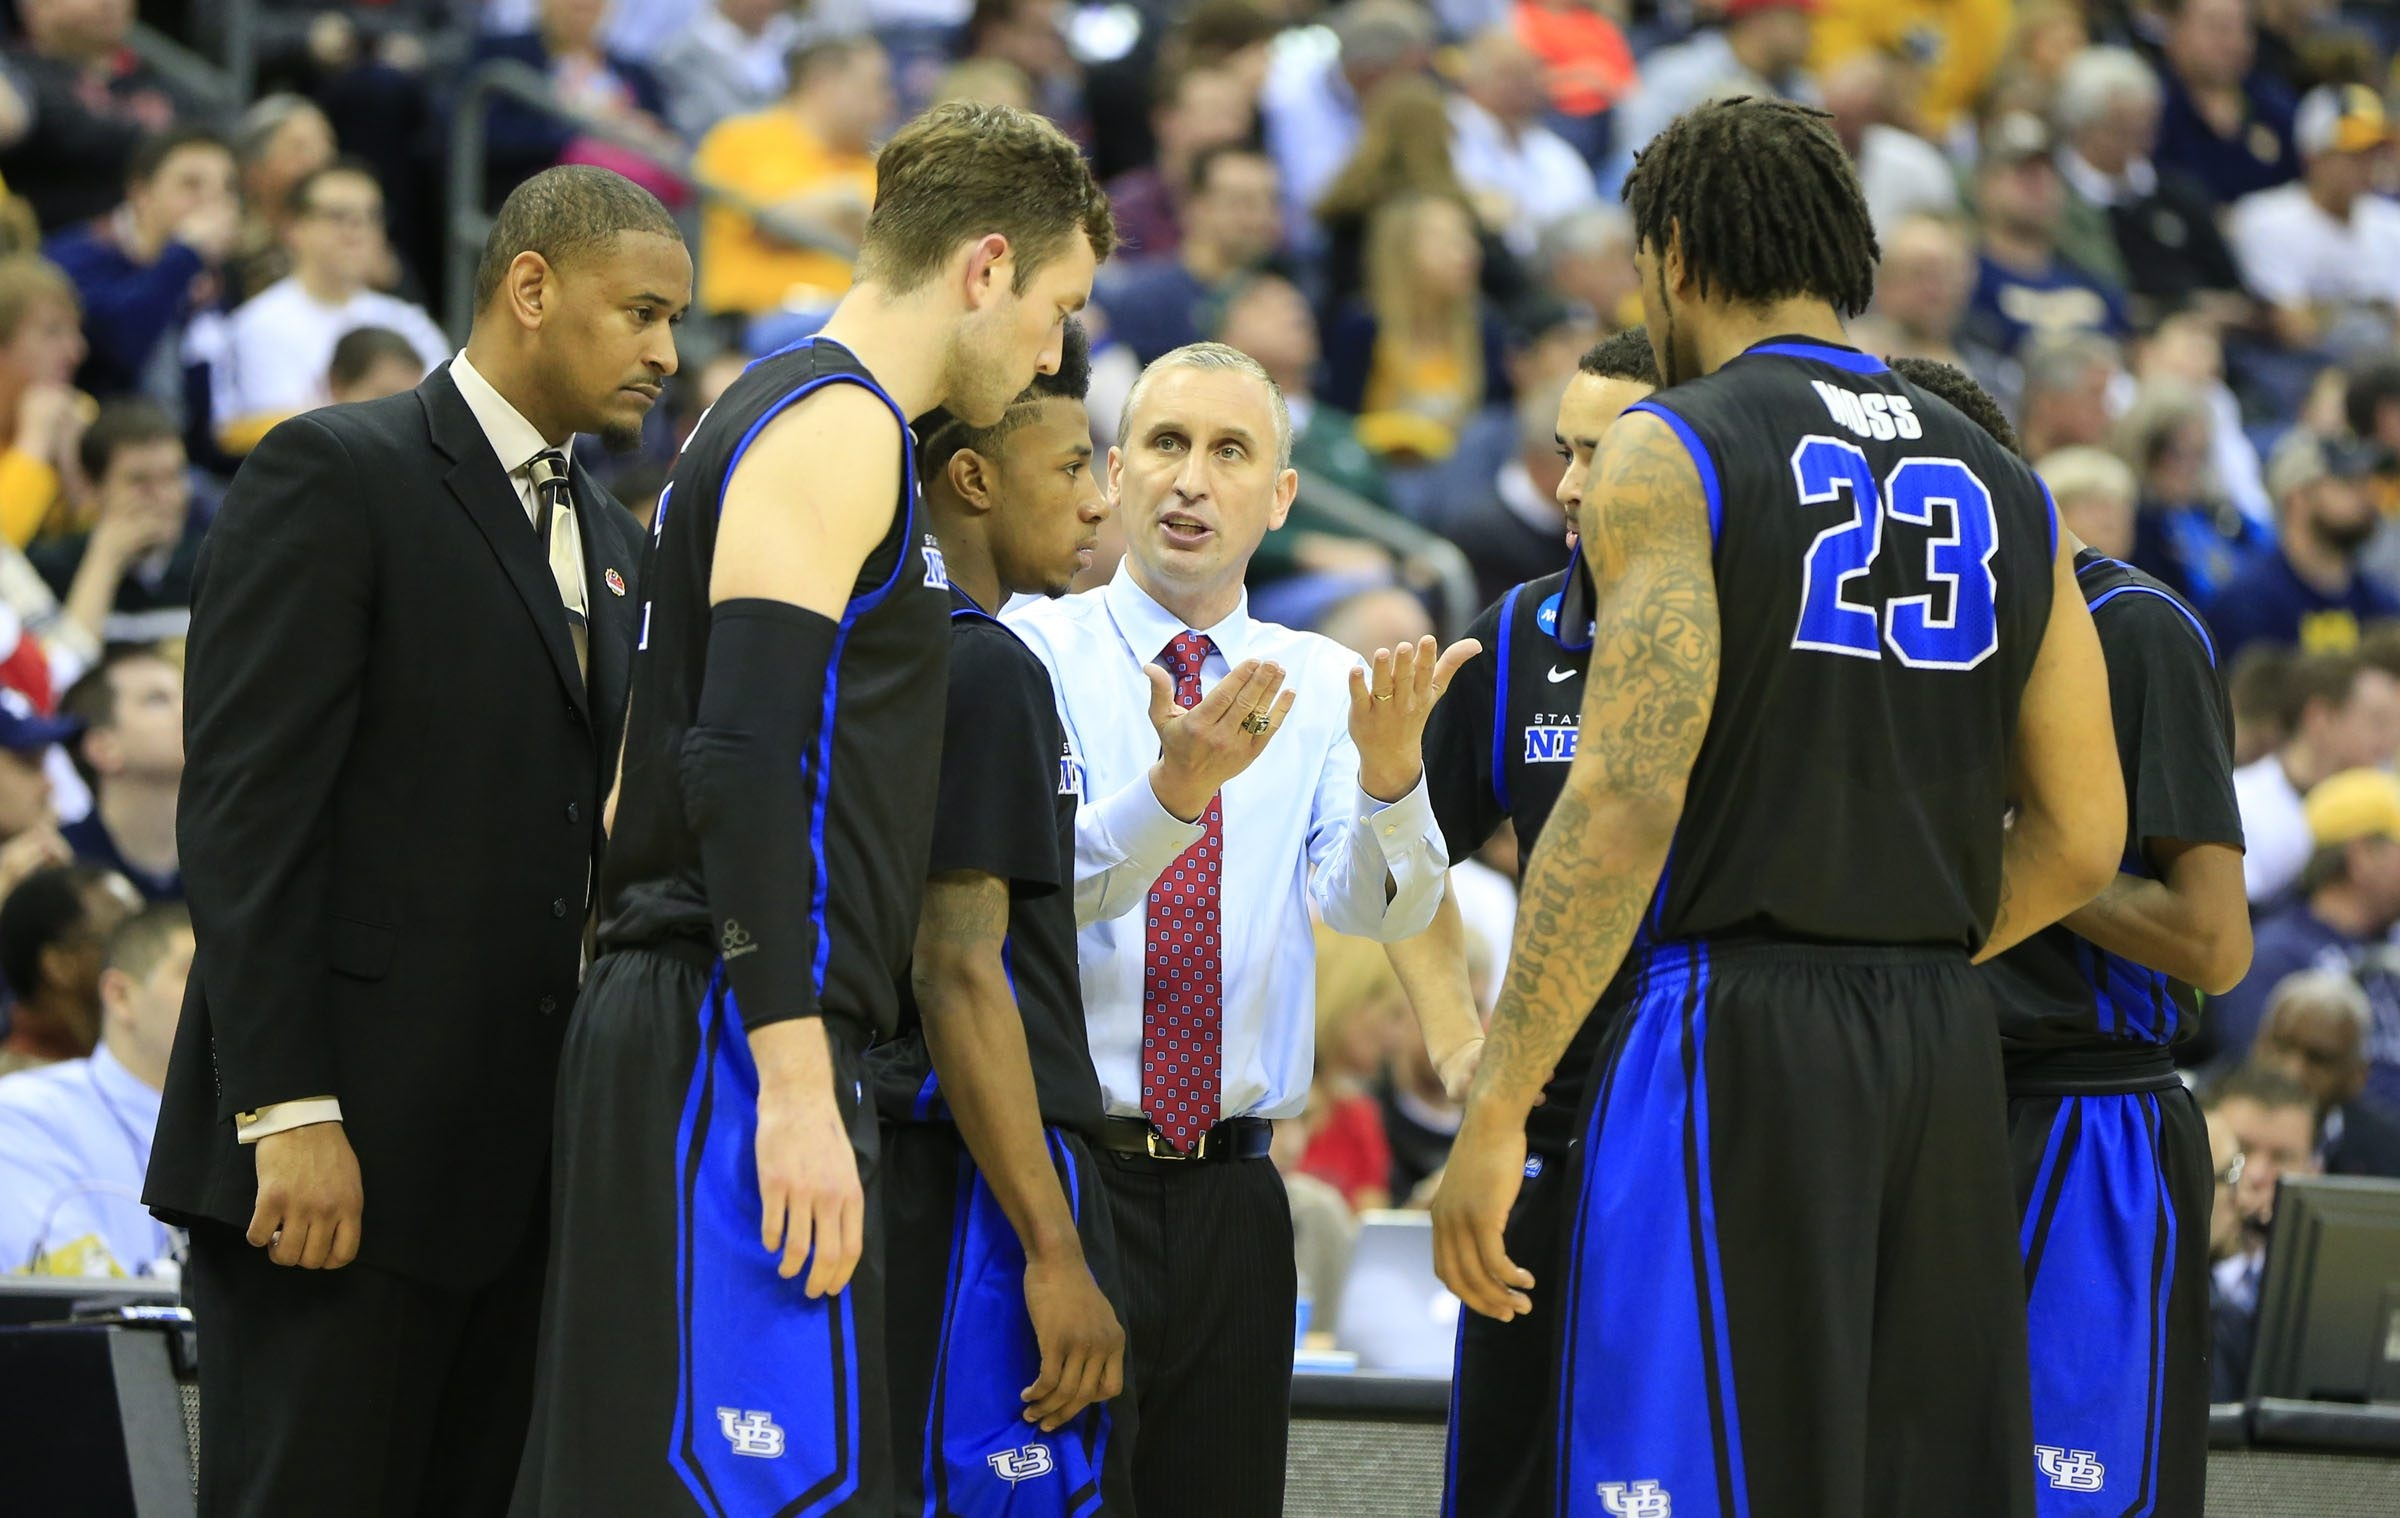 UB coach Bobby Hurley has good reasons to be optimistic about next season.